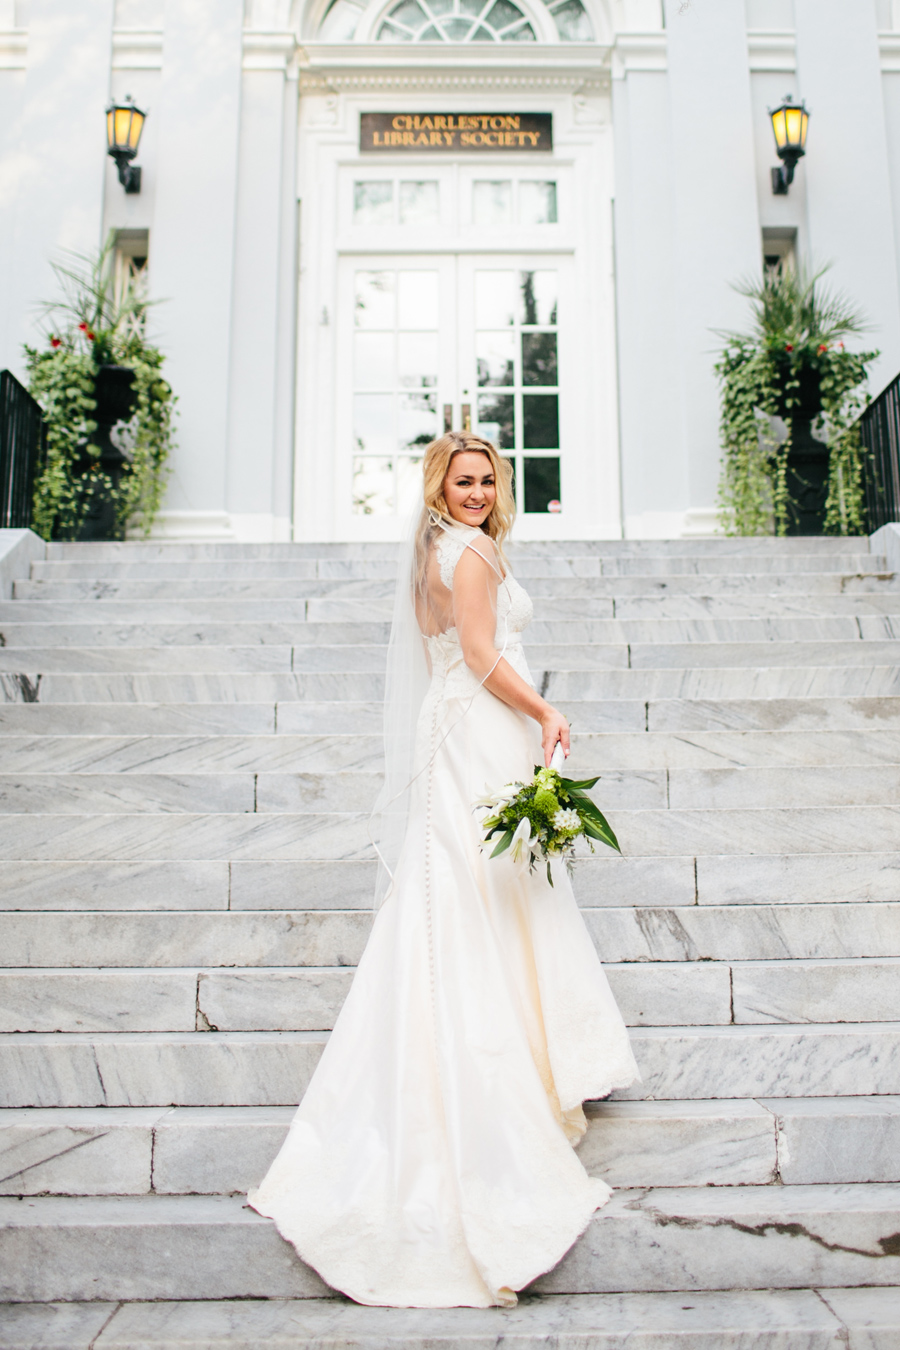 022-Sarah-historic-Charleston-bridal-portraits-by-Carolina-Photosmith-